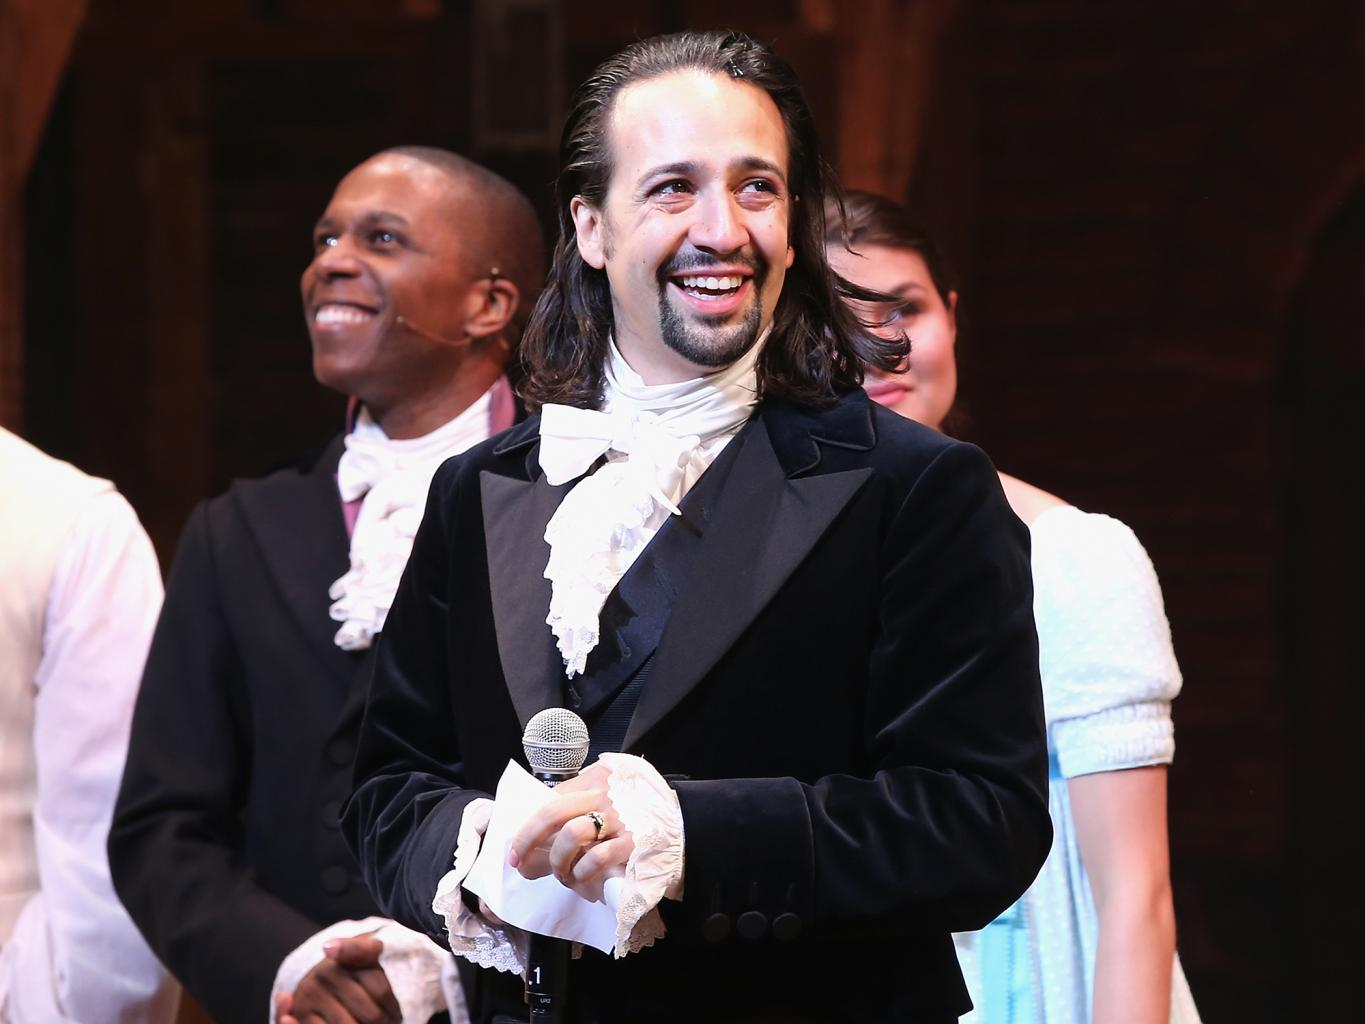 Lin-Manuel Miranda Disguised Himself to Watch Hamilton's Celebrity Crowd from the Audience